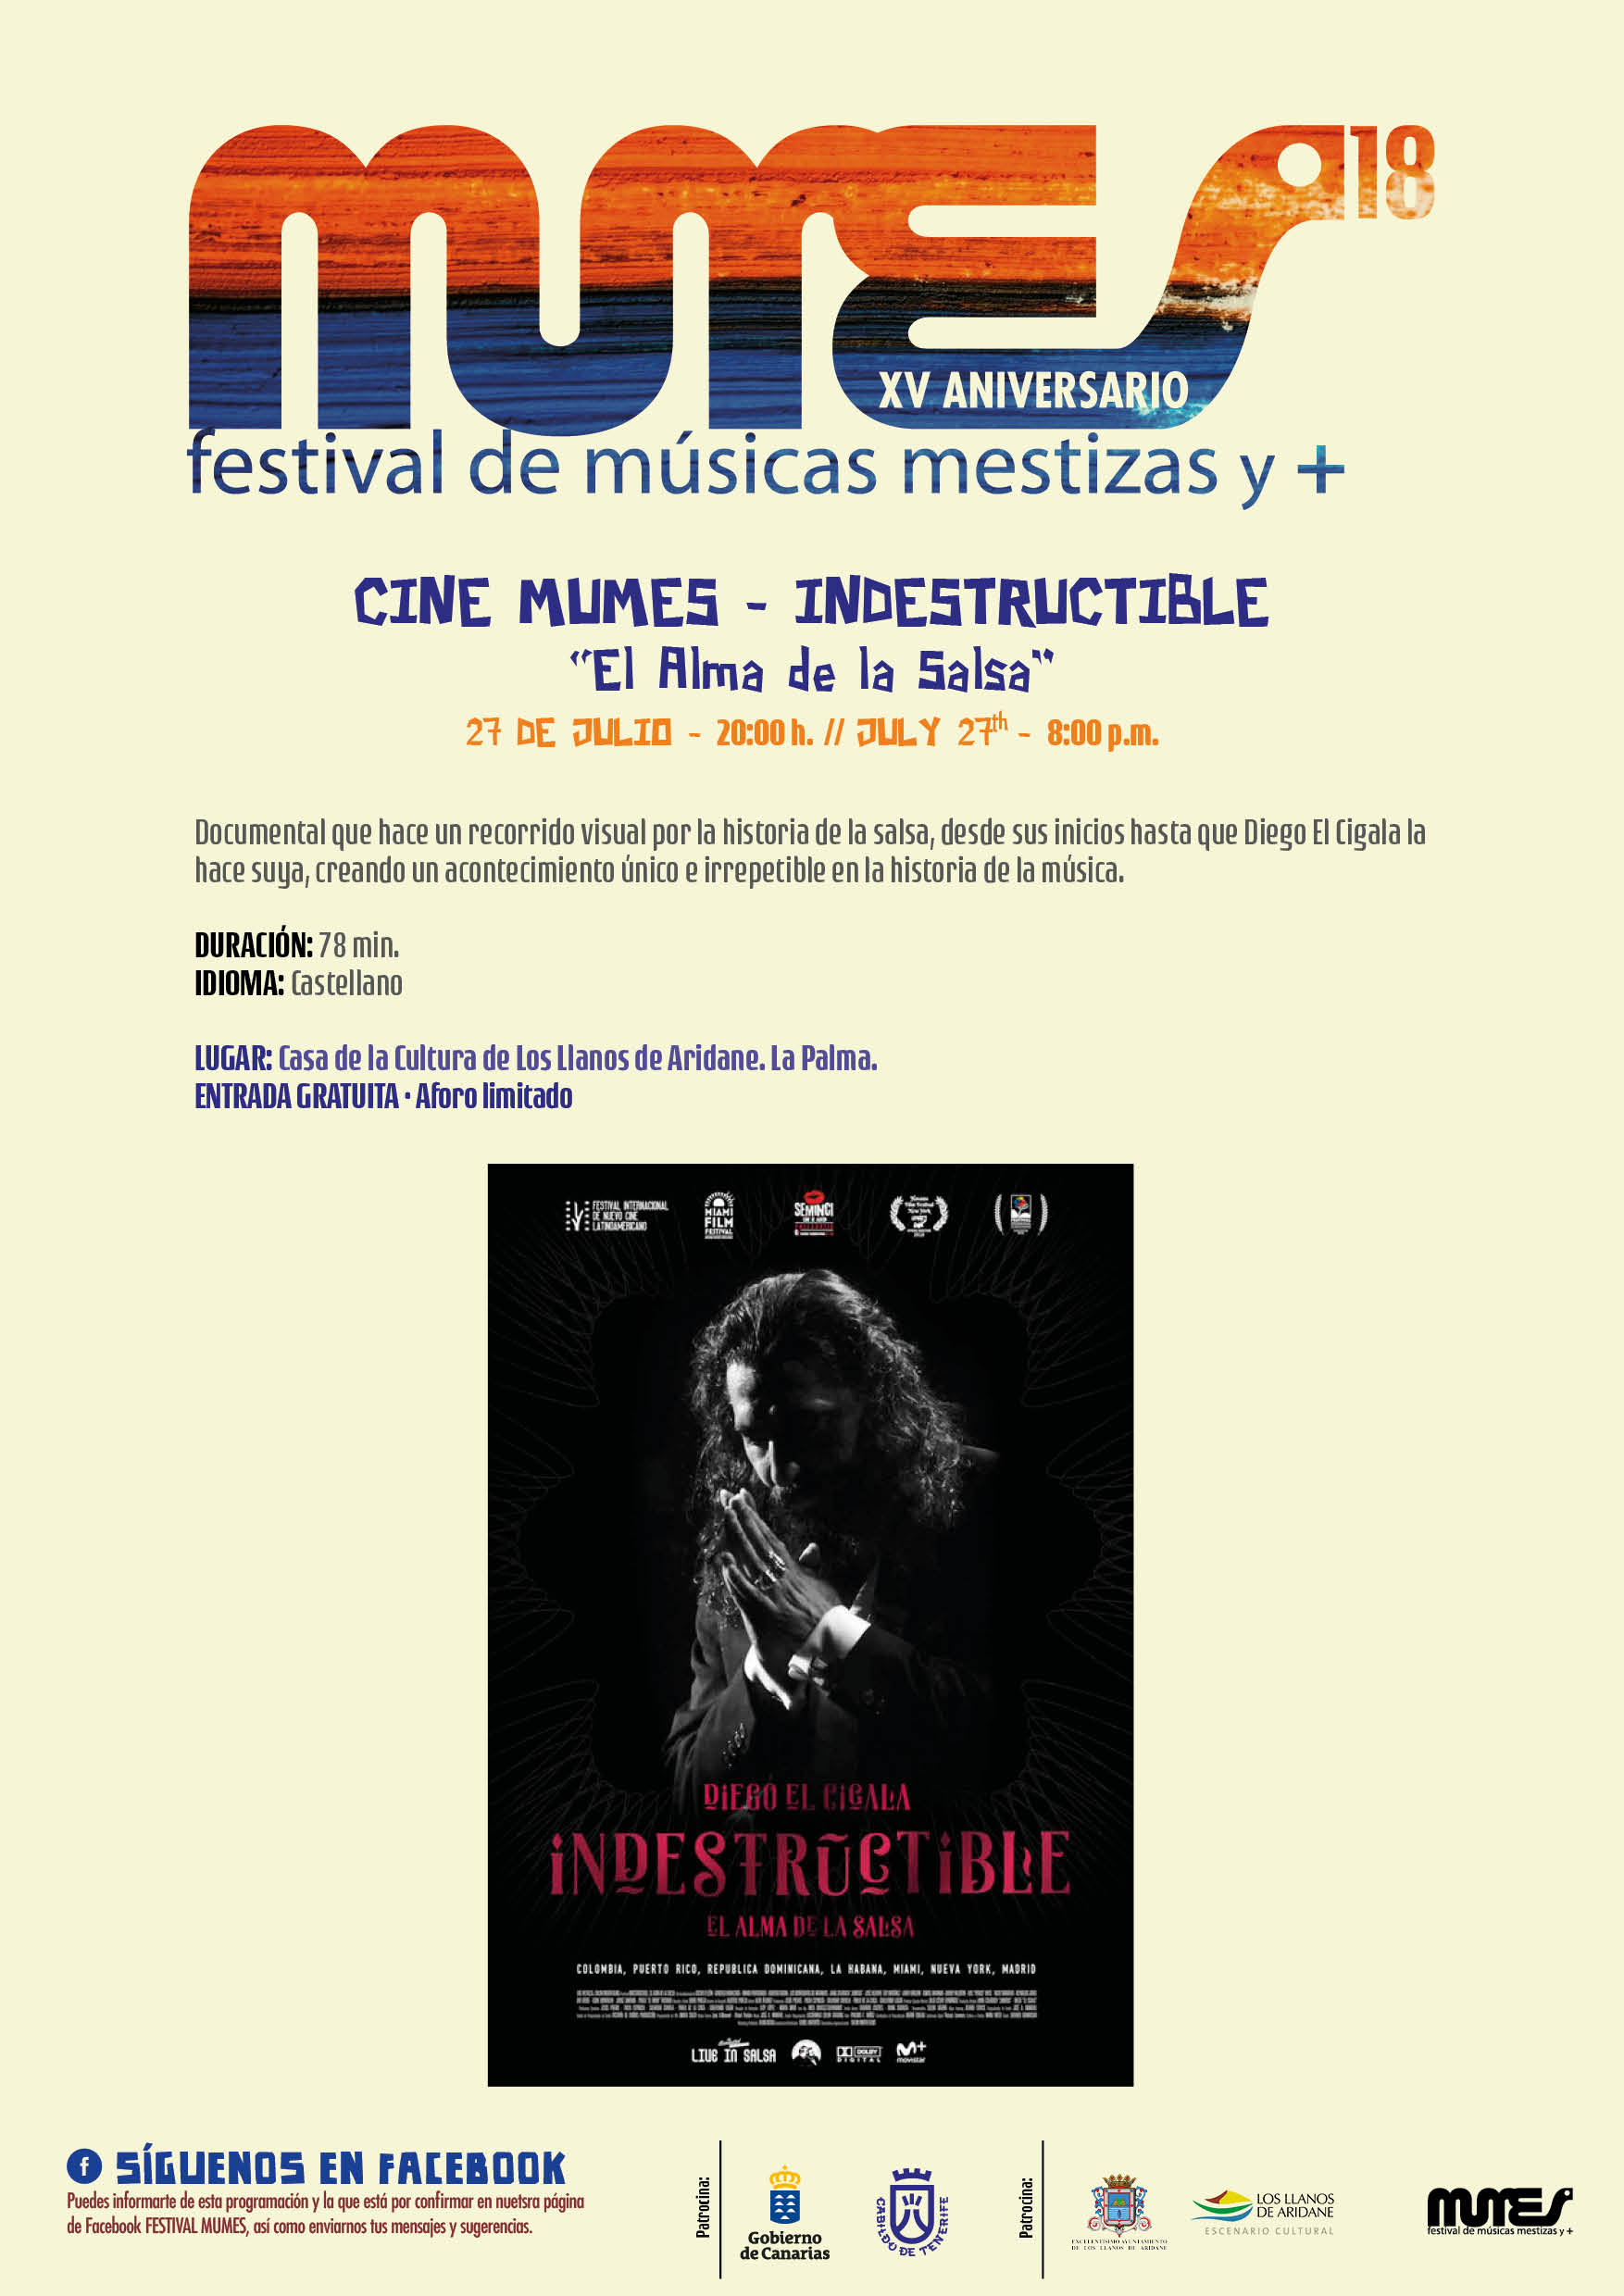 Cine Mumes - Indestructible